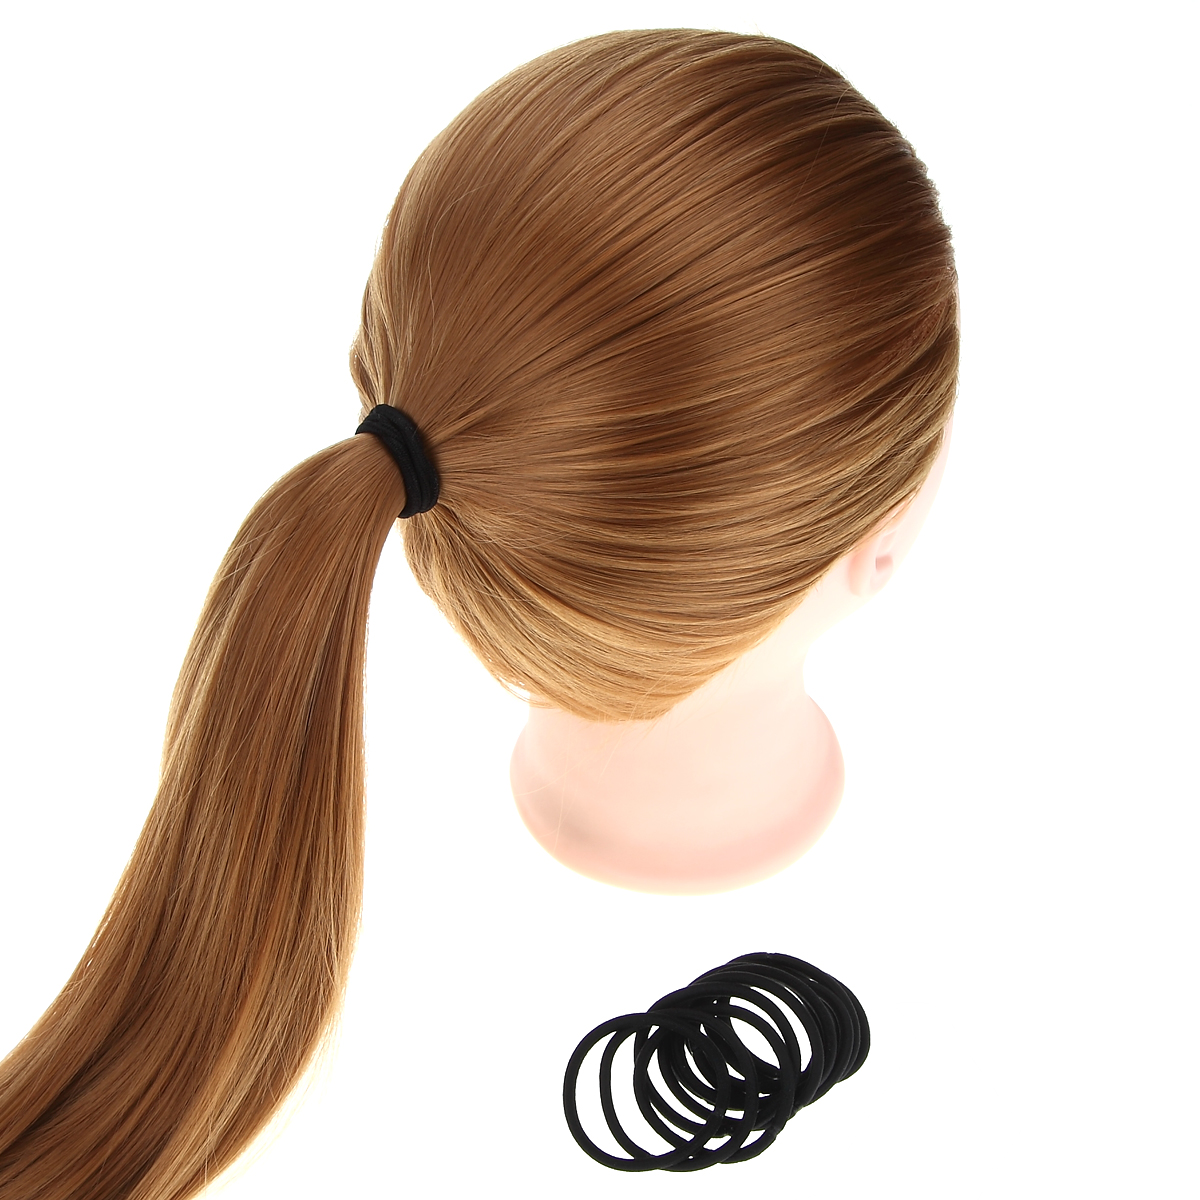 12 Pcs/set Black Color Solid Hair Ropes Ponytail Hold Rubber Elastic Hair Band Hair Accessories for Women Keep Hairstyle Tools(China (Mainland))